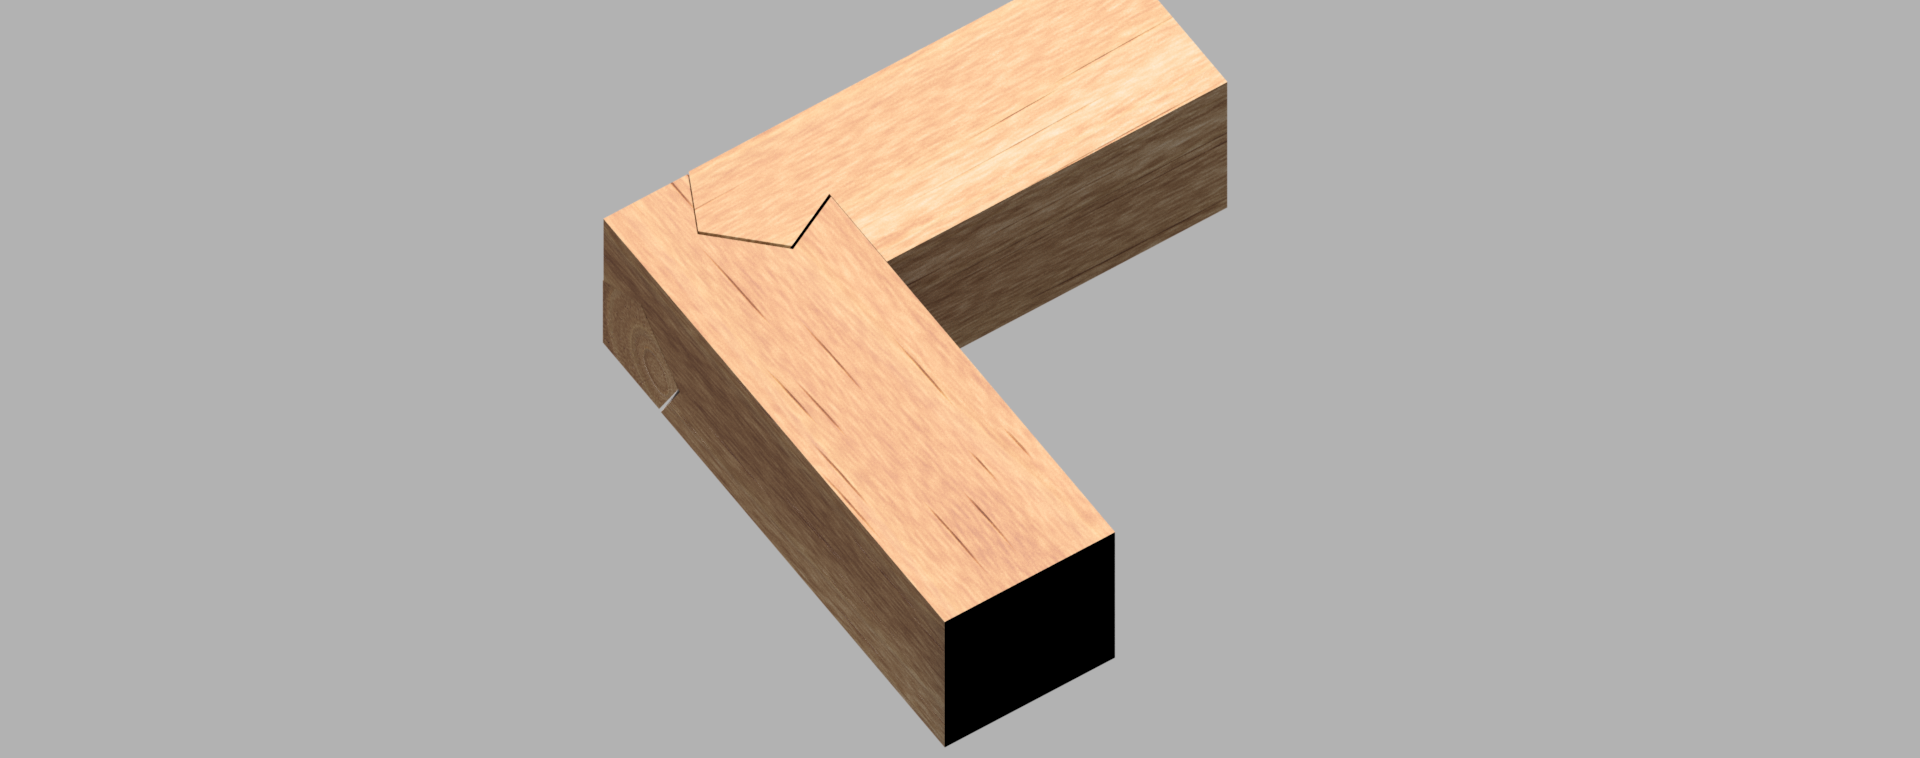 3way_joint_0.png Download free STL file 3way joint_(Kawai Tsugite) • 3D print template, Fricis